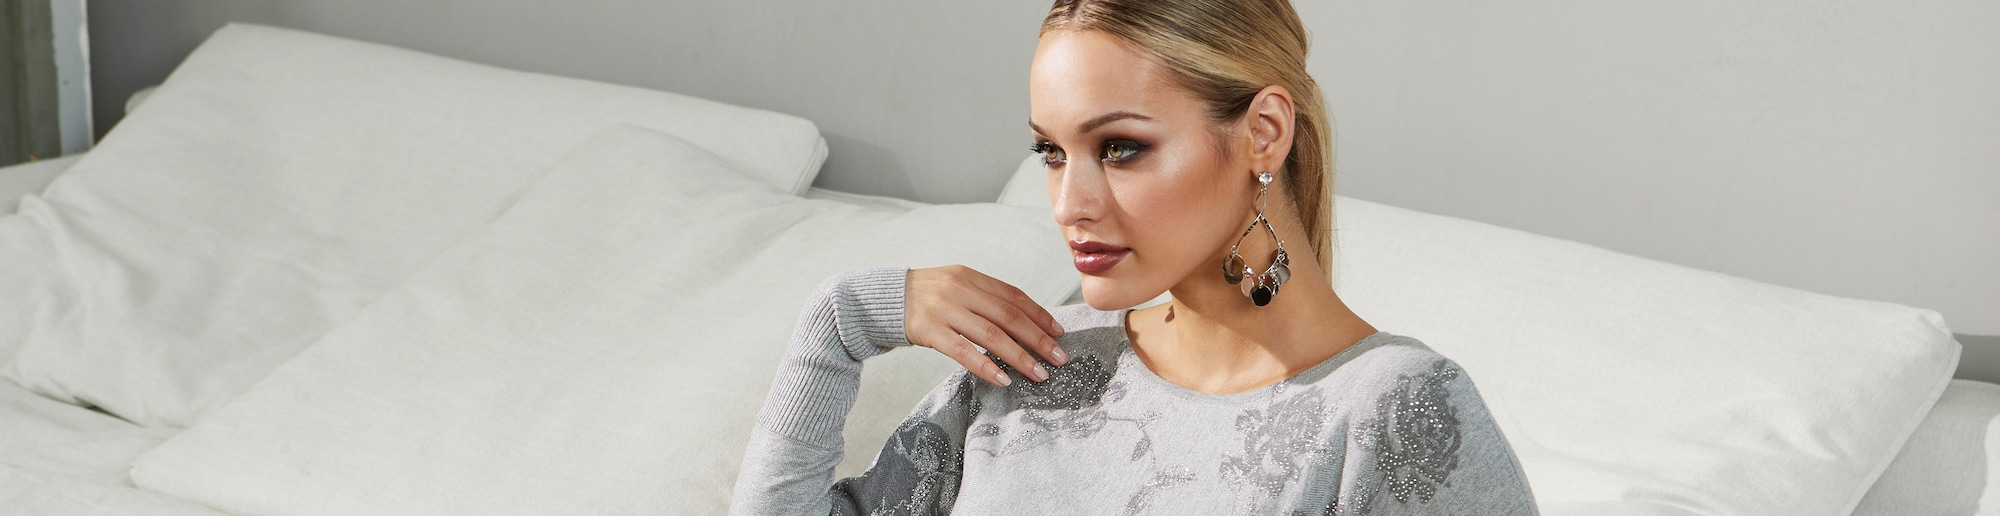 melrose mode online kaufen bei about you